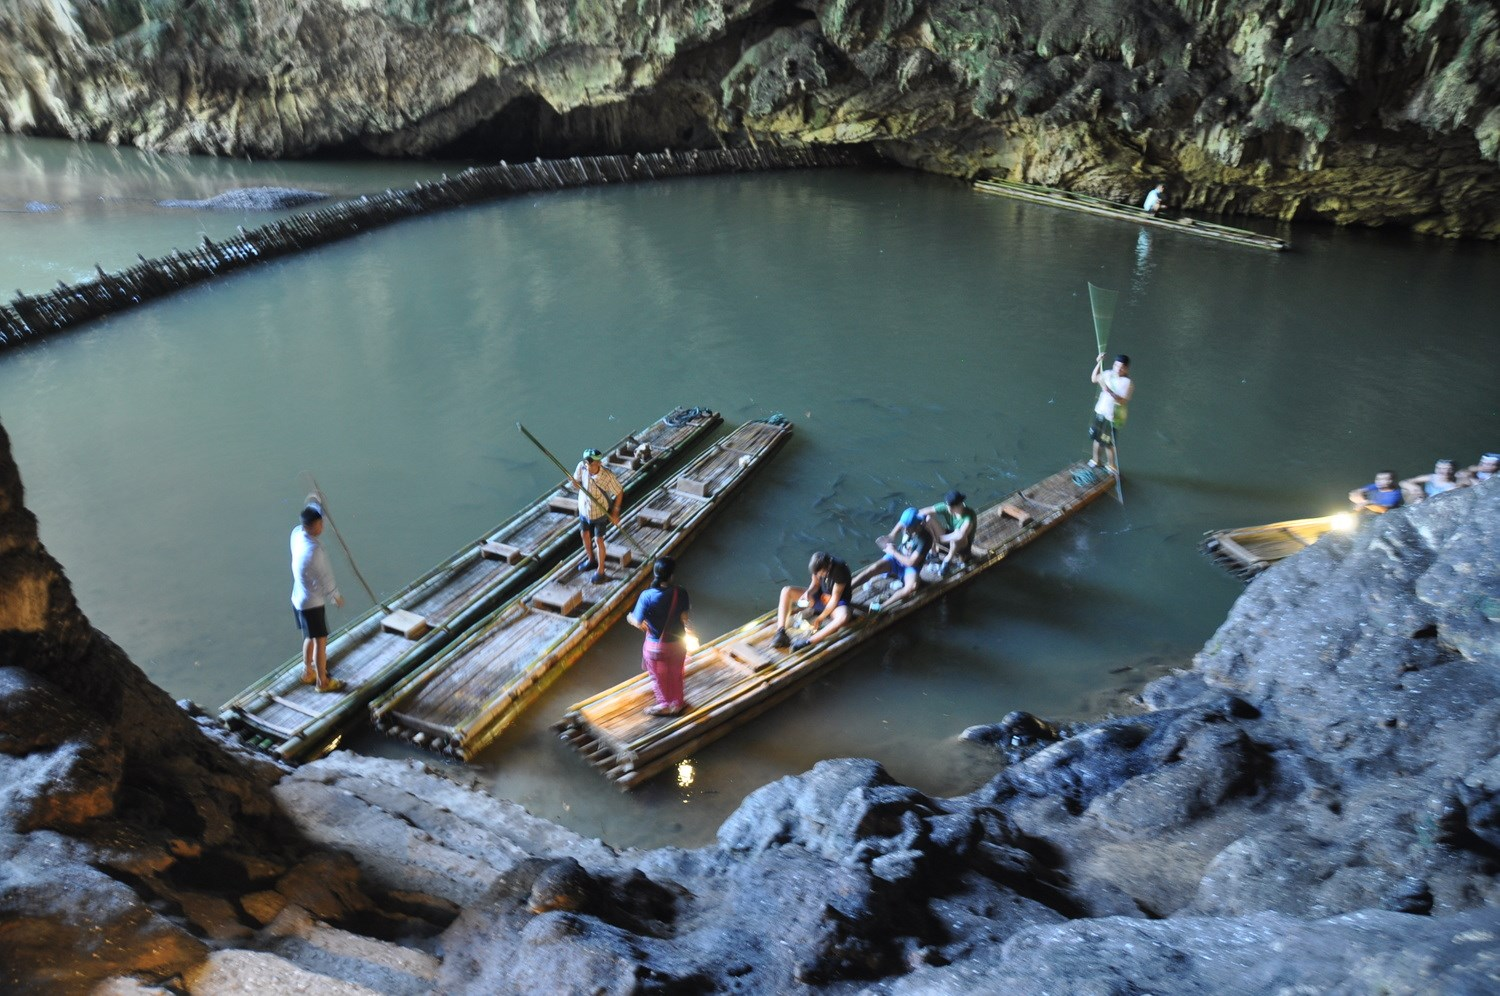 Lod Cave Complete Guide to Pai, Thailand